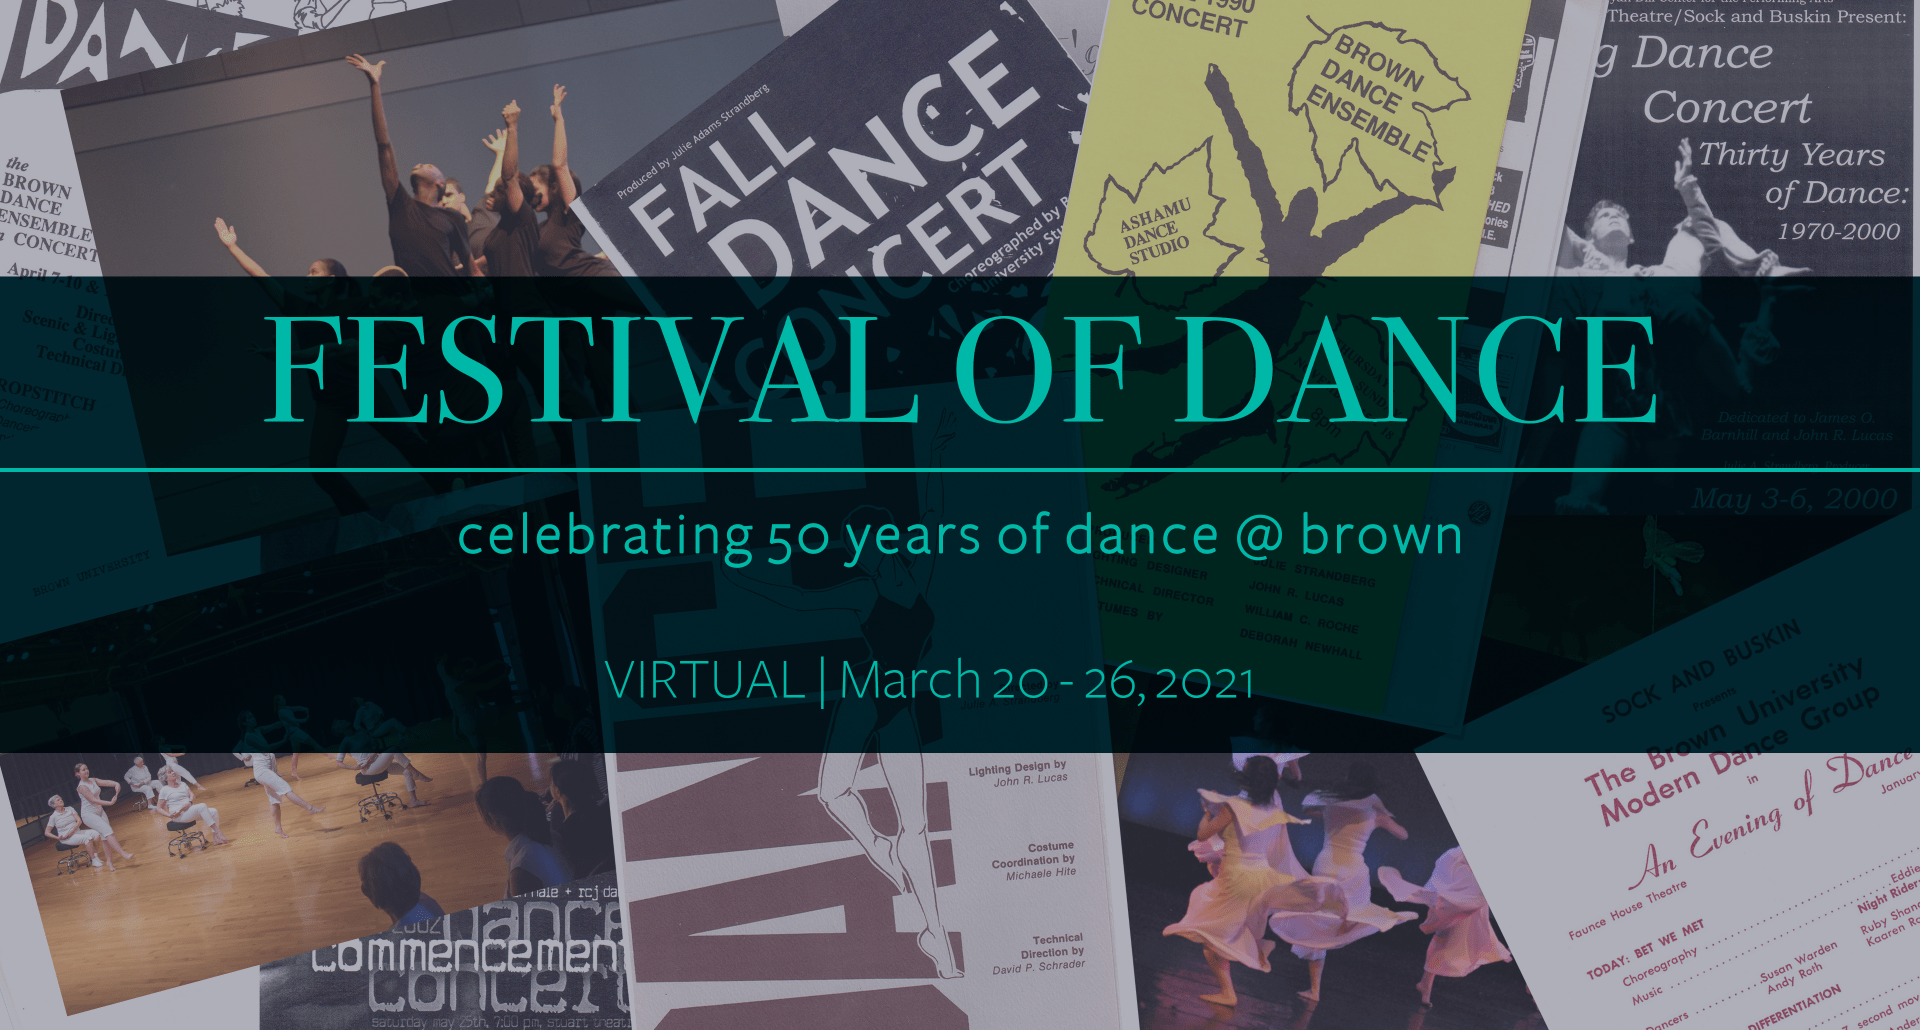 """In the background is a collage of historical photos and programs from the dance program at Brown. Overlayed ontop of the photos is a tean square that says """"Festival of Dance. Celebrating 50 years of Dance at Brown. Virtual, March 20 - 26, 2021."""""""